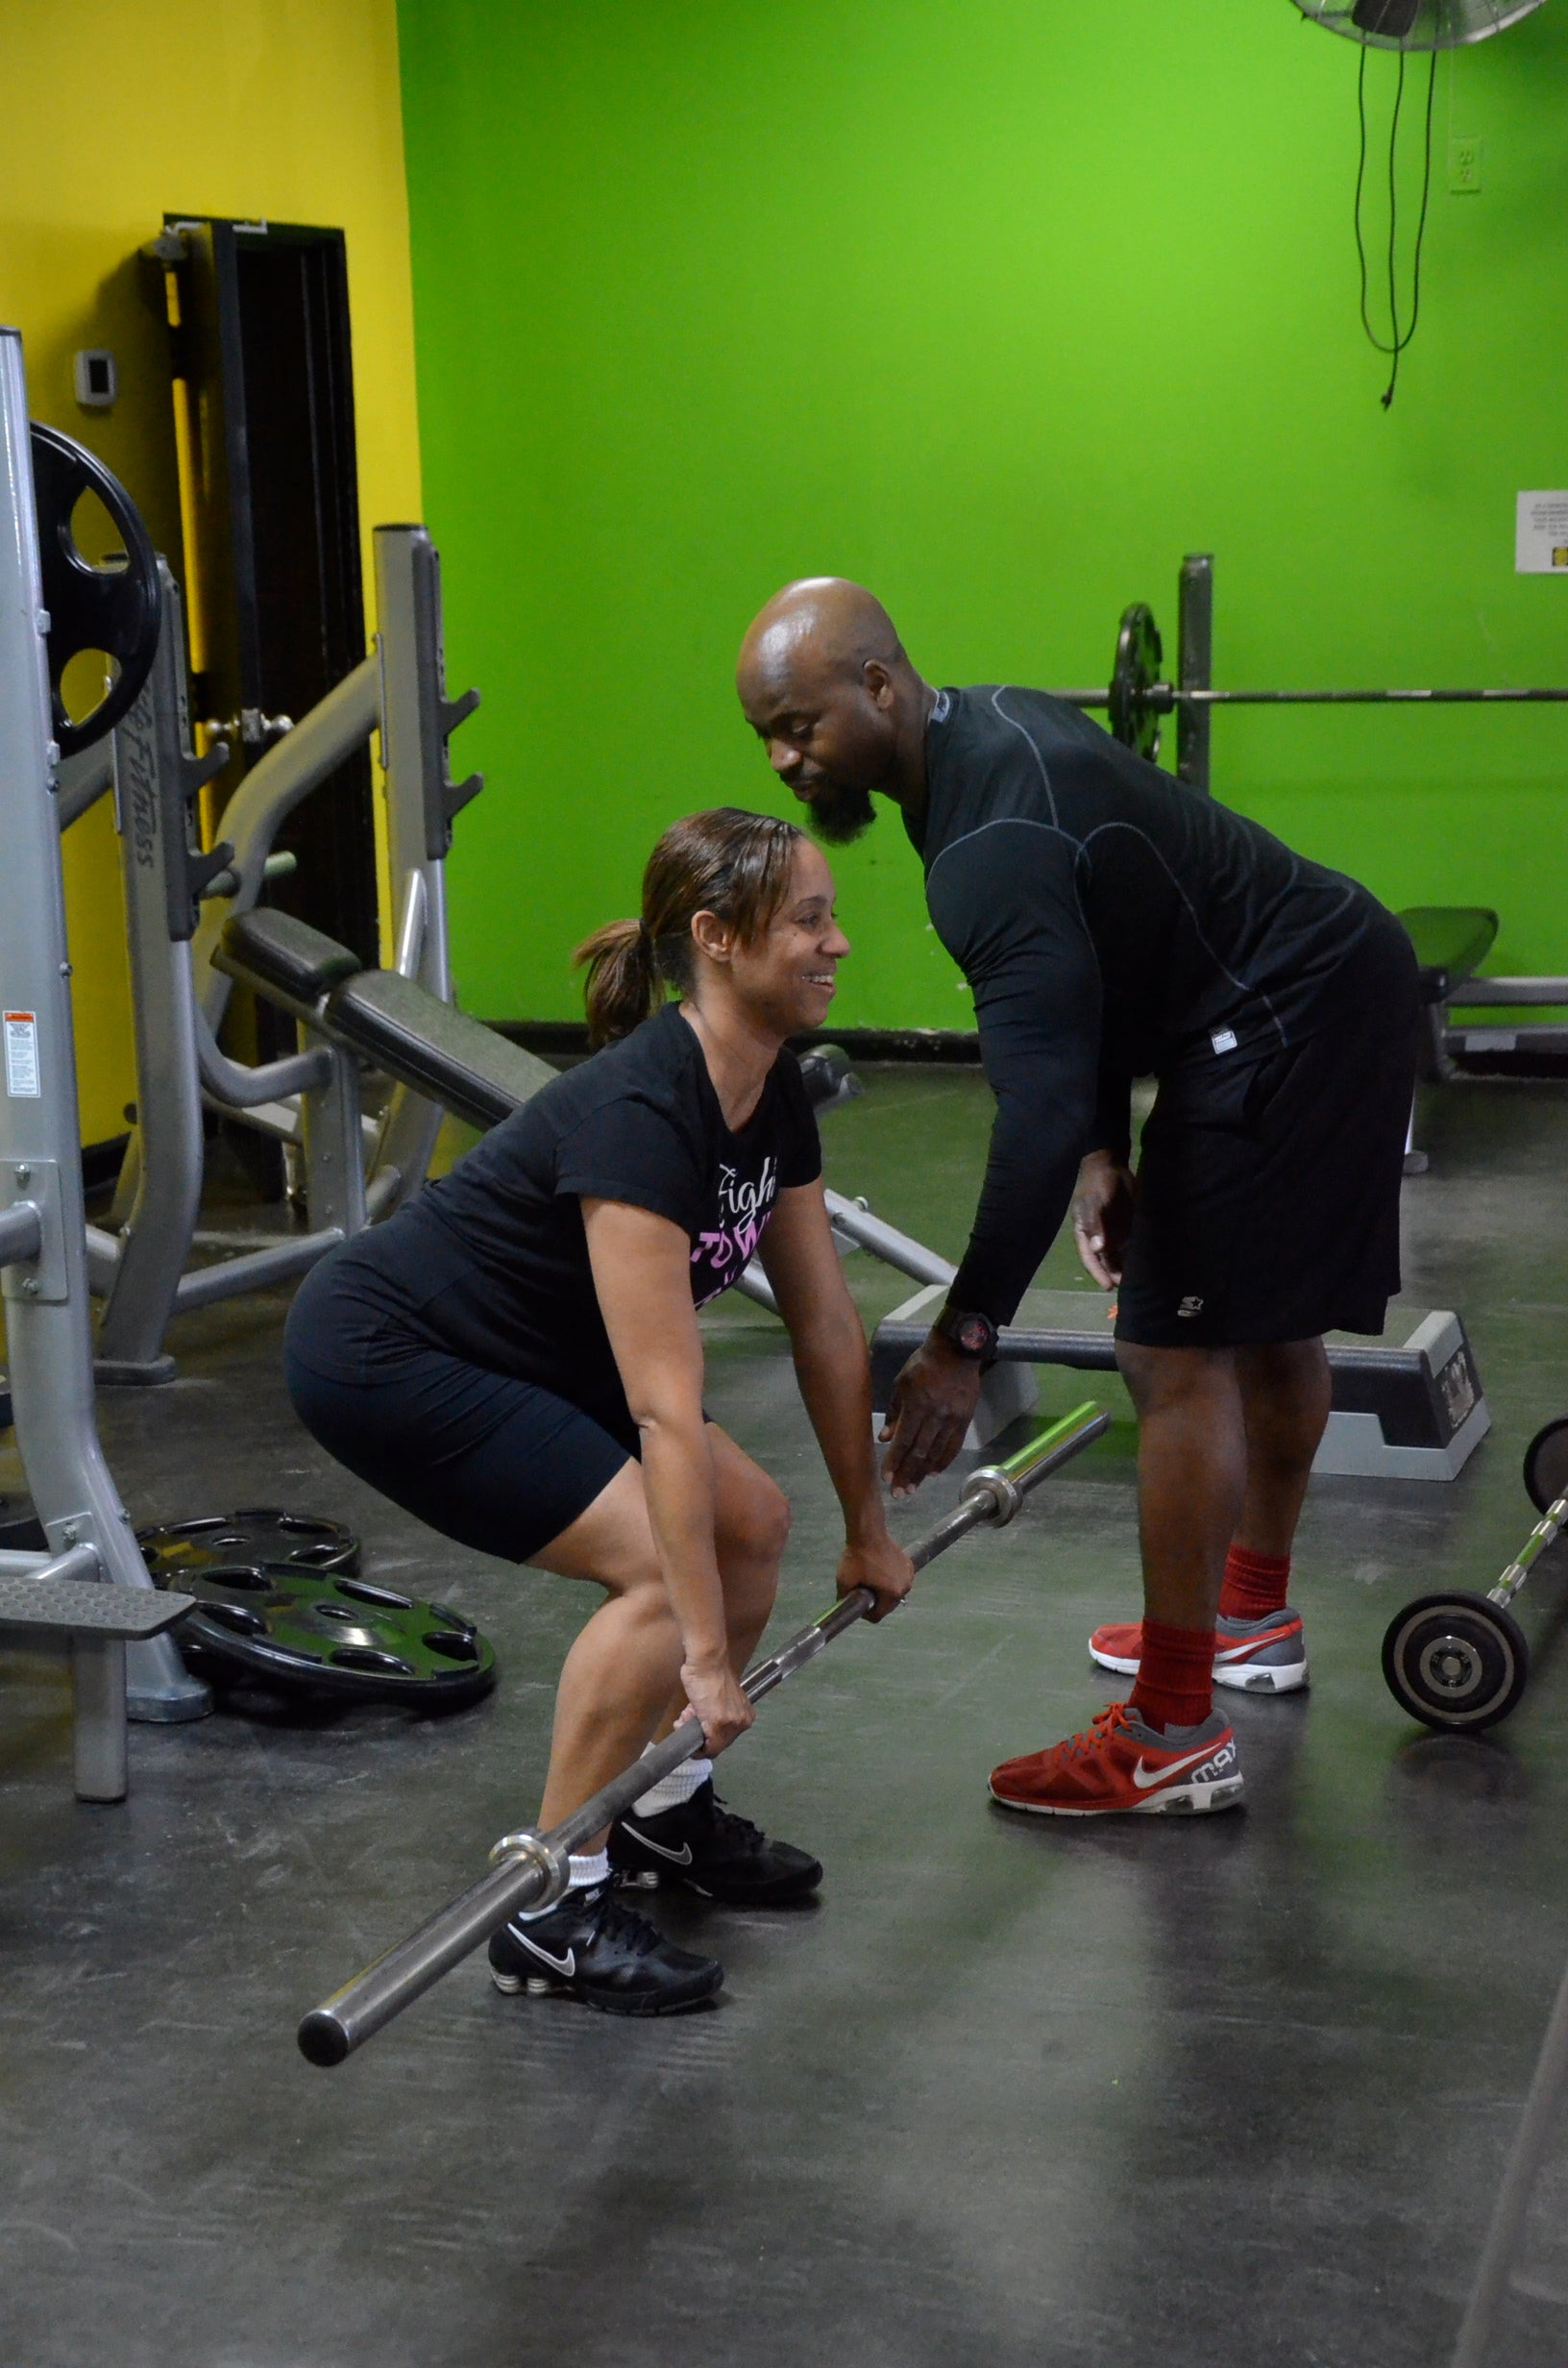 Fitness 4 Less, cardio, free weights,24 hour gym,fitness,fitness 4 less,fitness center,fitness for less,fitness4less,gym,gym memberships,gyms in upper marlboro,health club,personal training,workout